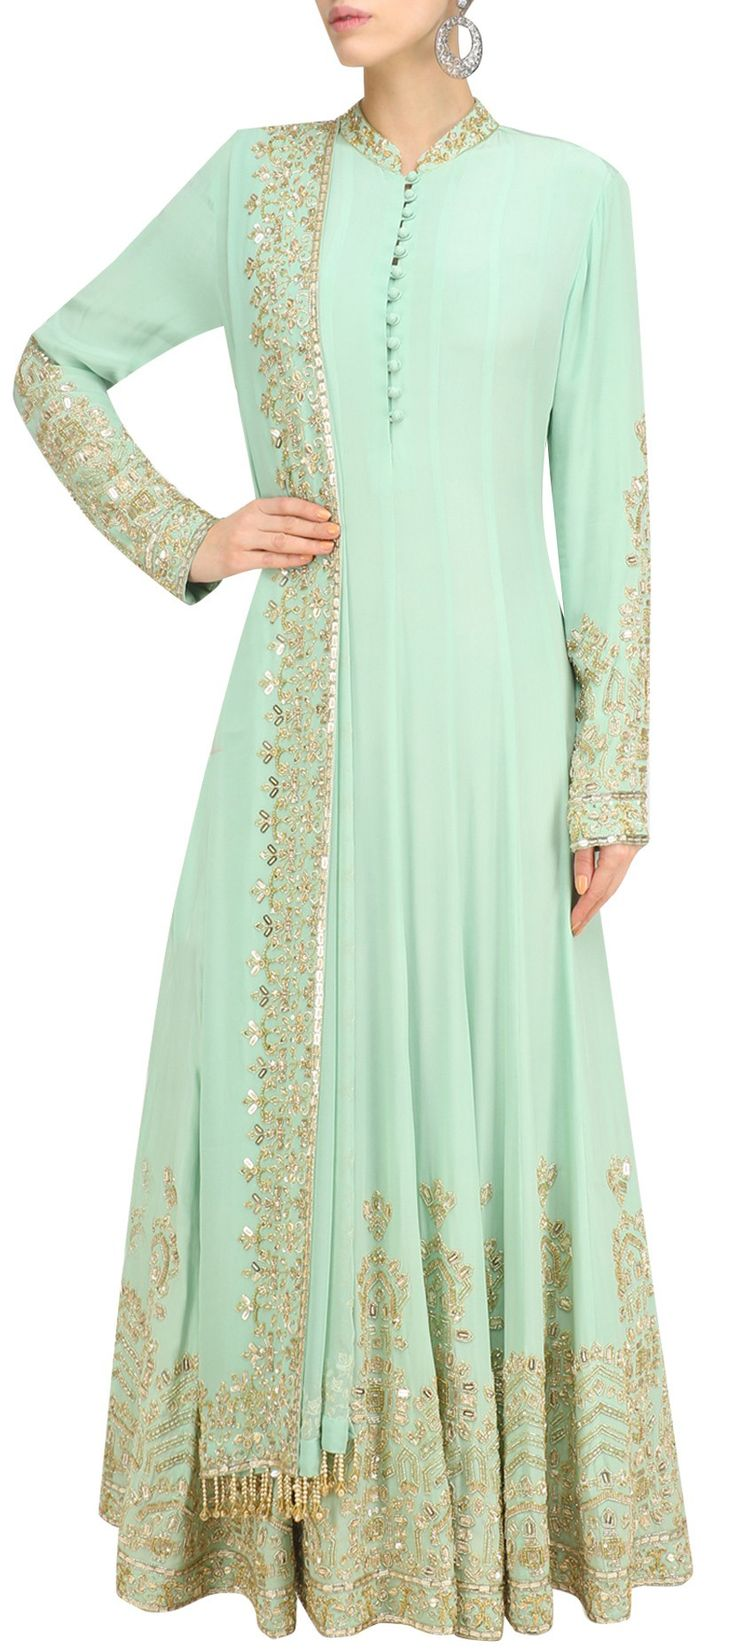 489699: Green  color family  stitched Anarkali Suits .